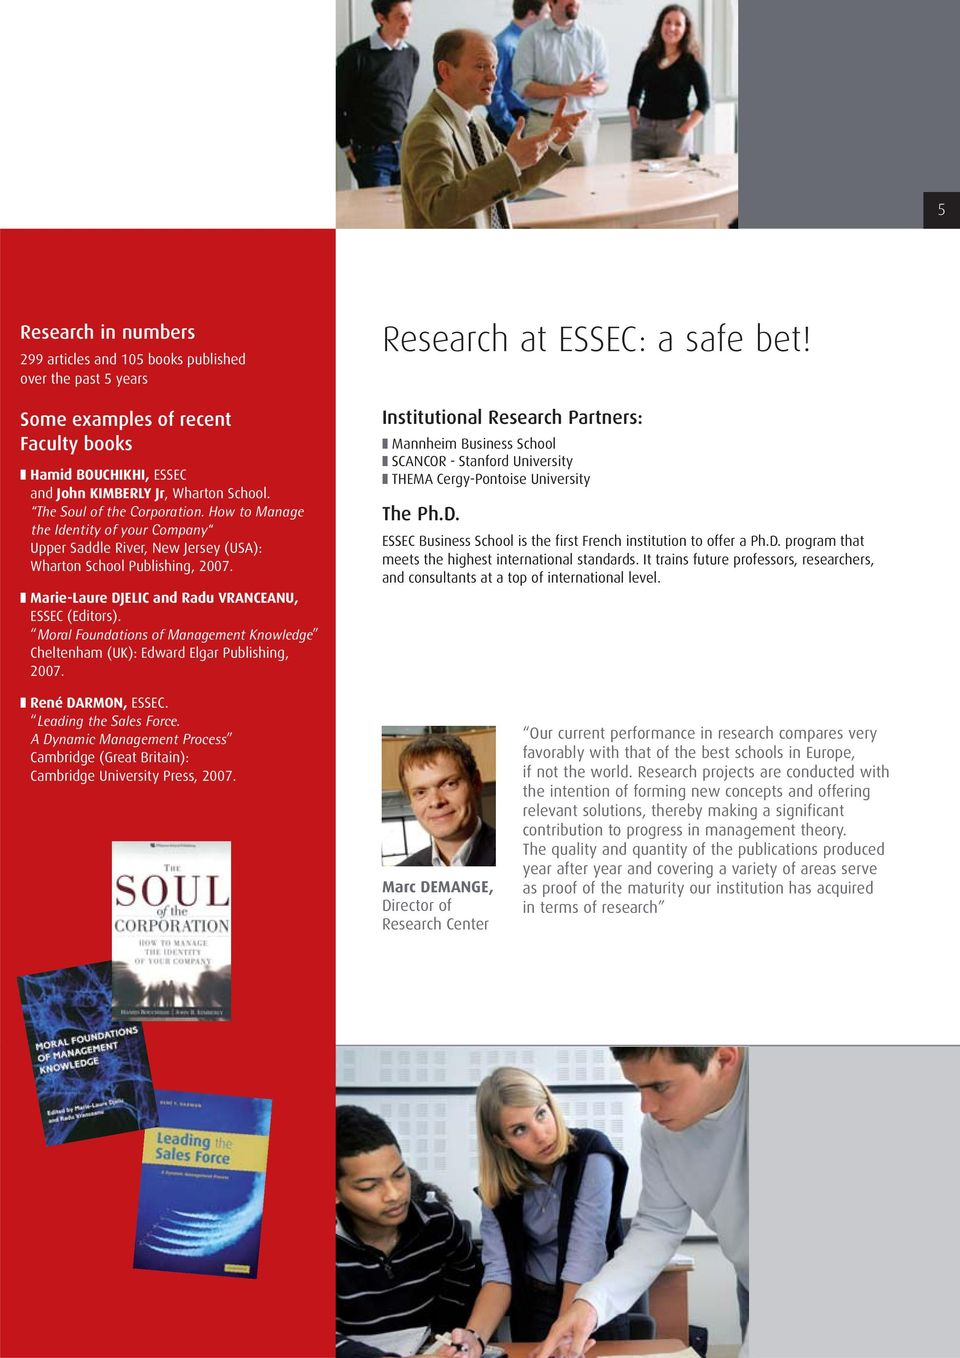 Moral Foundations of Management Knowledge Cheltenham (UK): Edward Elgar Publishing, 2007. Research at ESSEC: a safe bet!